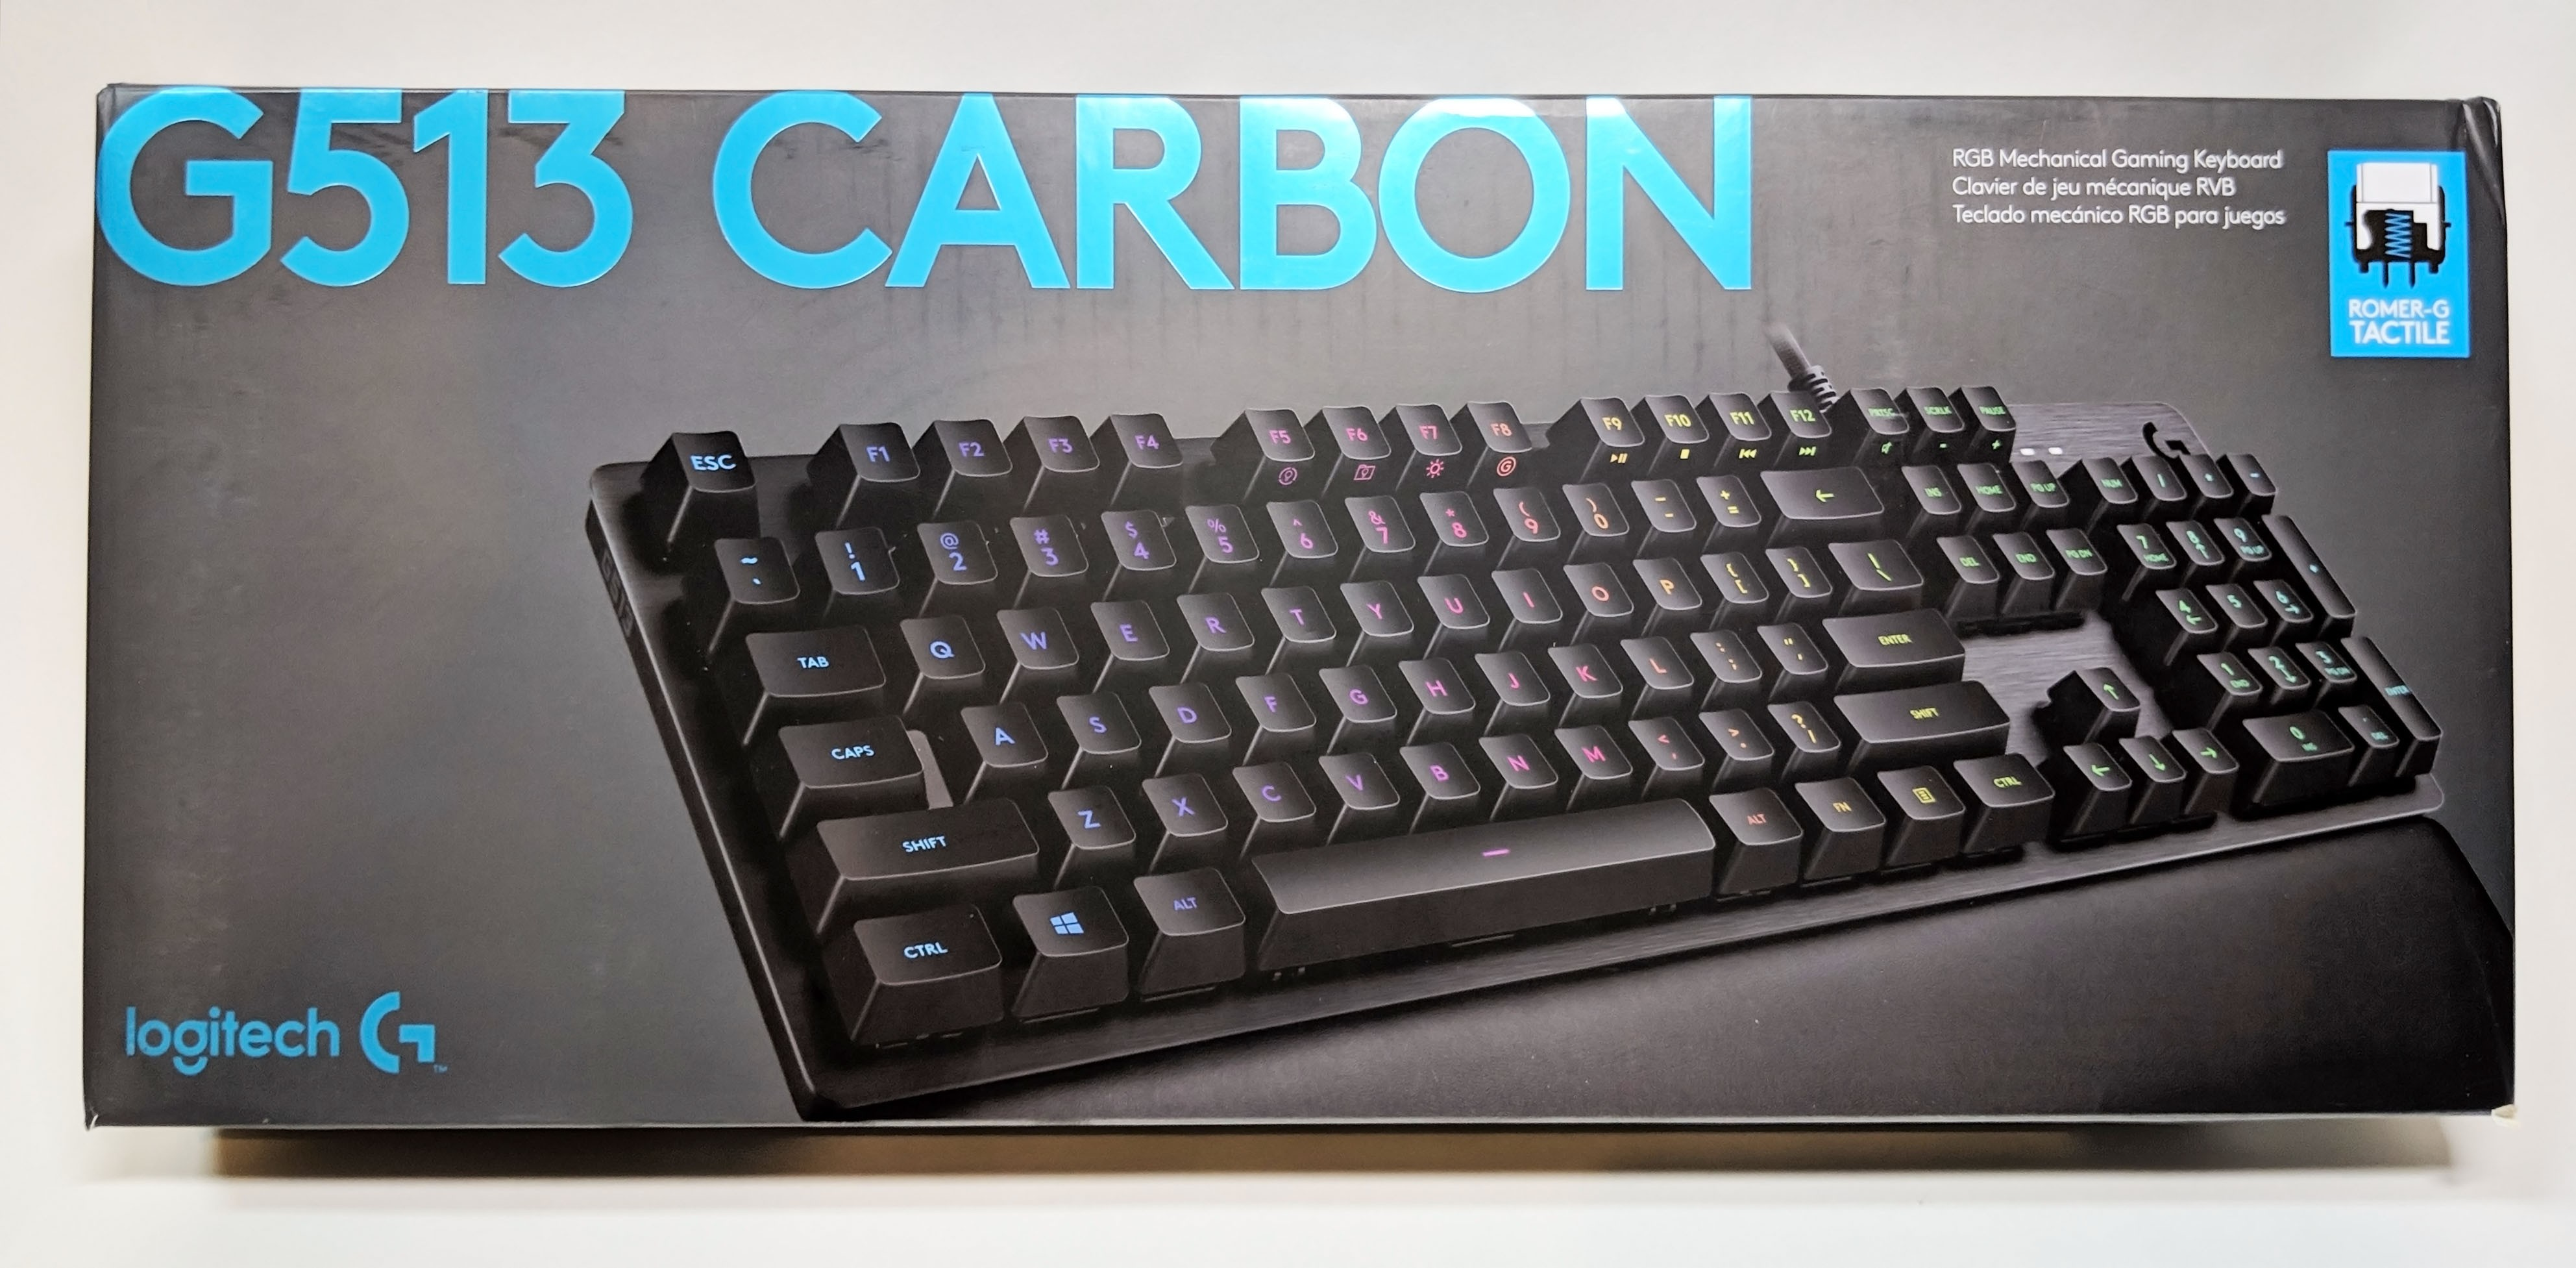 Logitech G513 Carbon Gaming Keyboard Review – GND-Tech